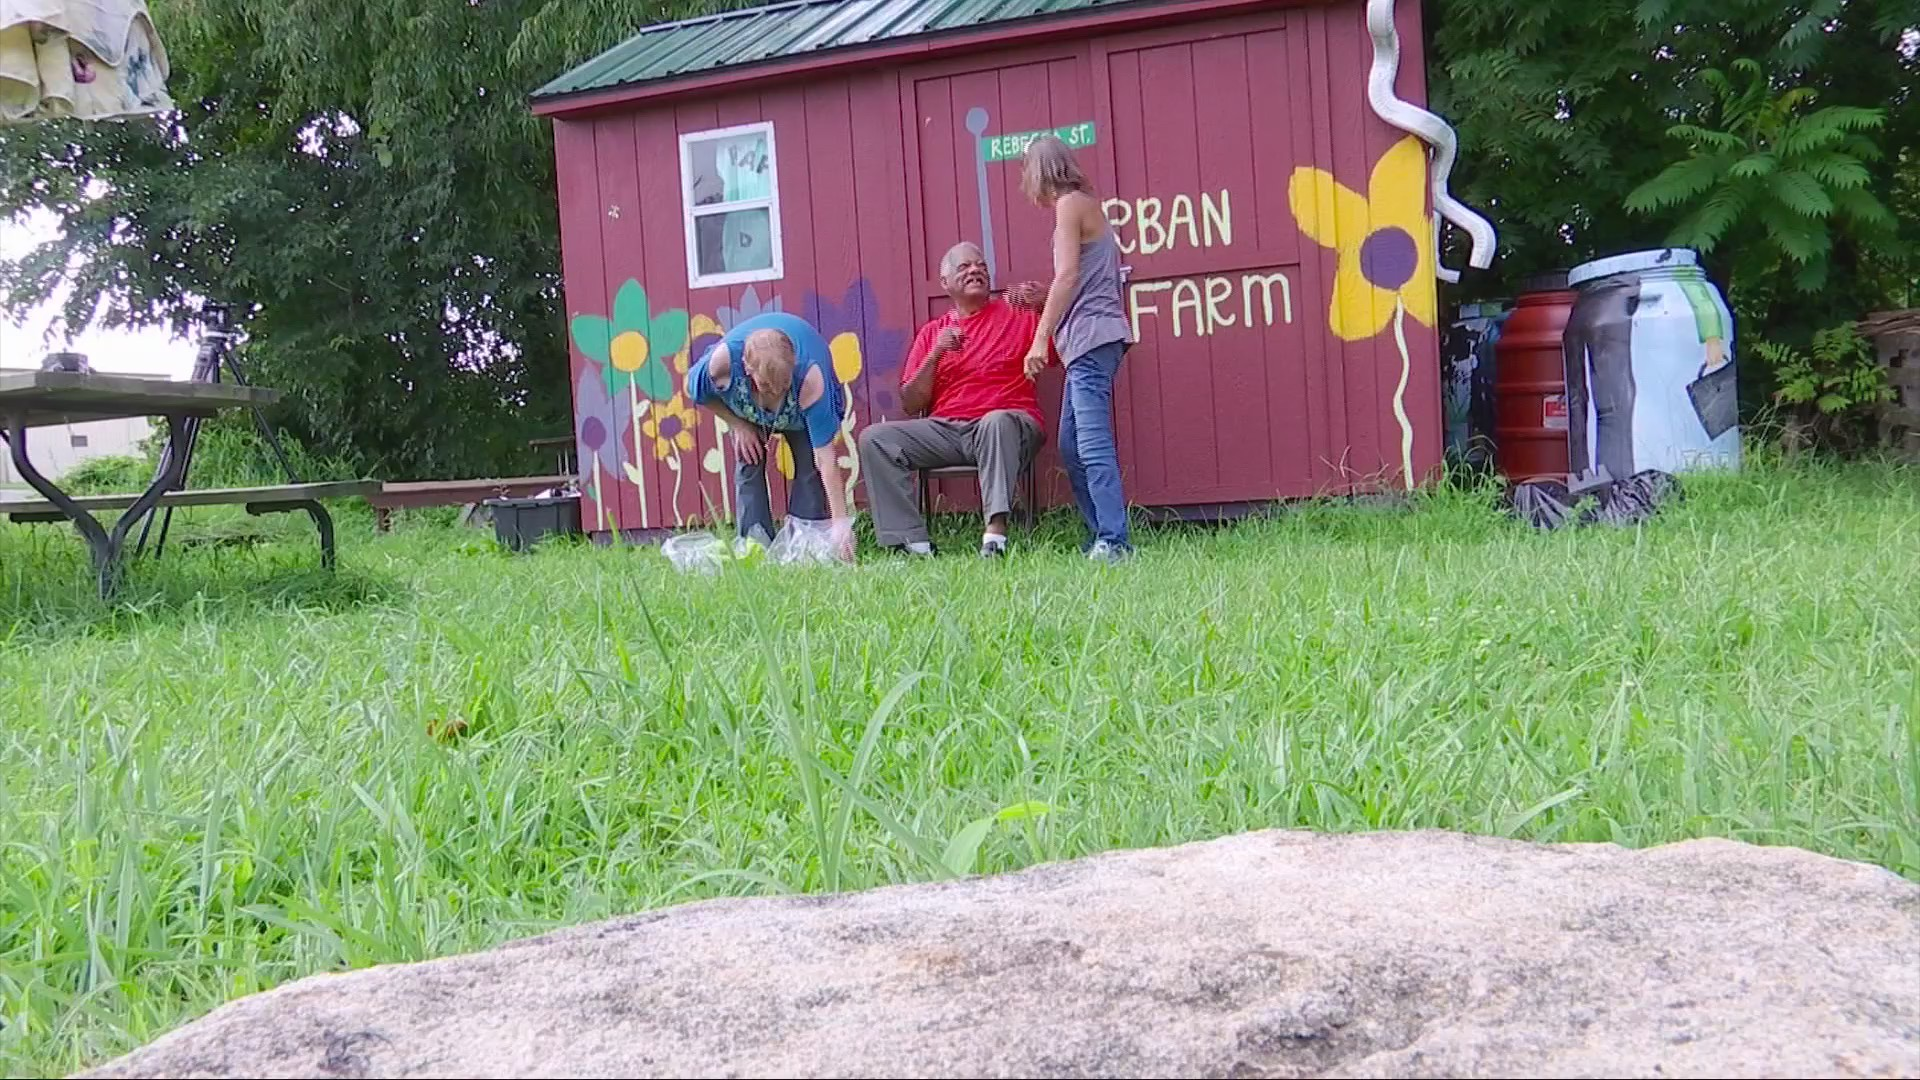 Community Garden Offering Hope to West Side Residents